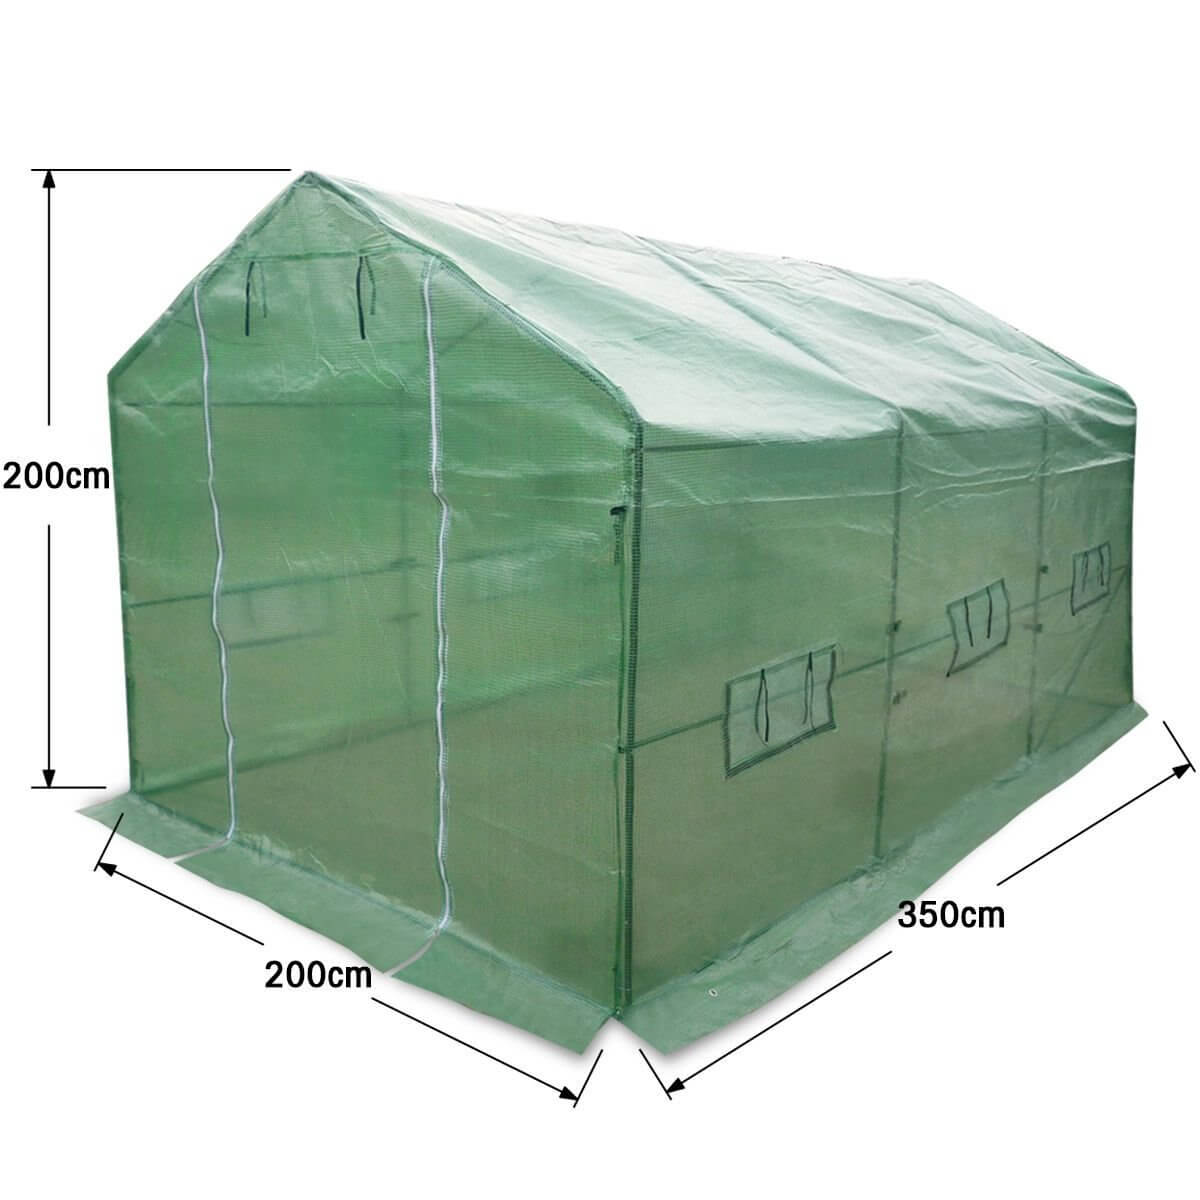 Greenhouse Air Circulation : Greenhouse plans insteading